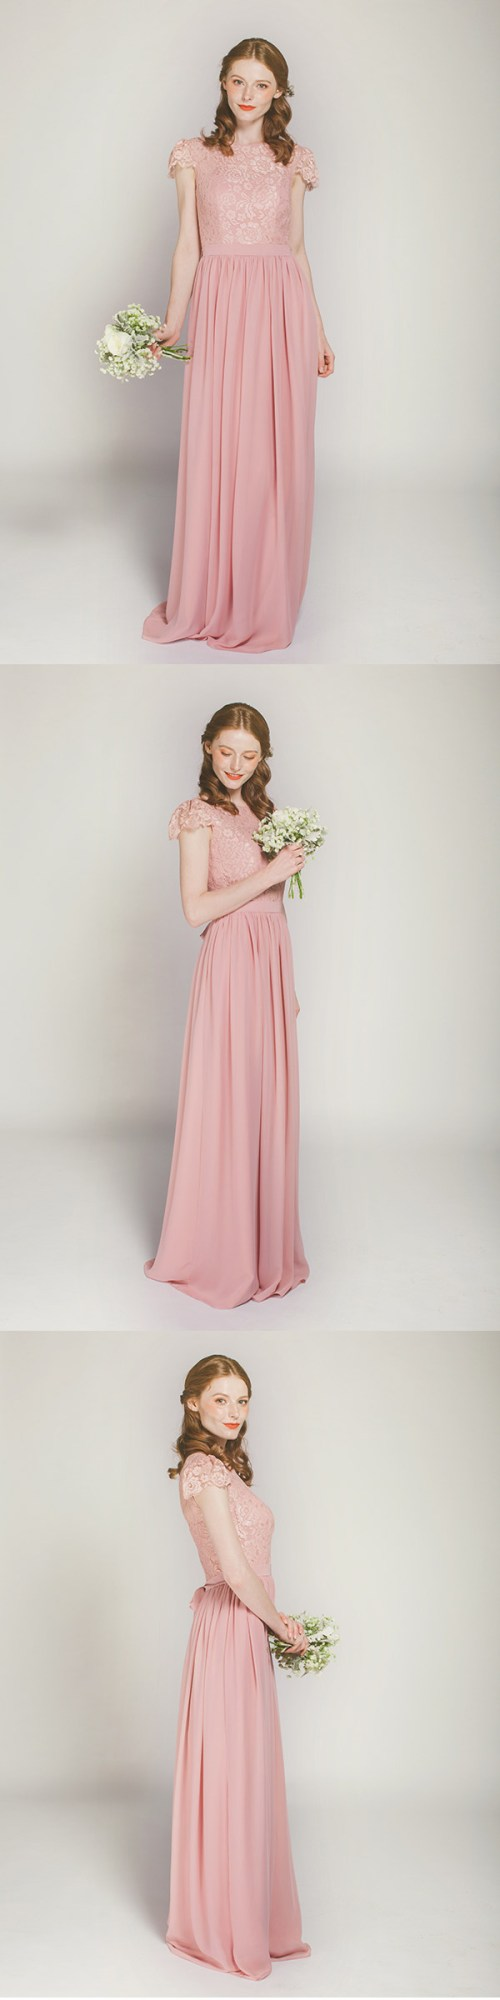 Medium Of Dusty Rose Bridesmaid Dresses